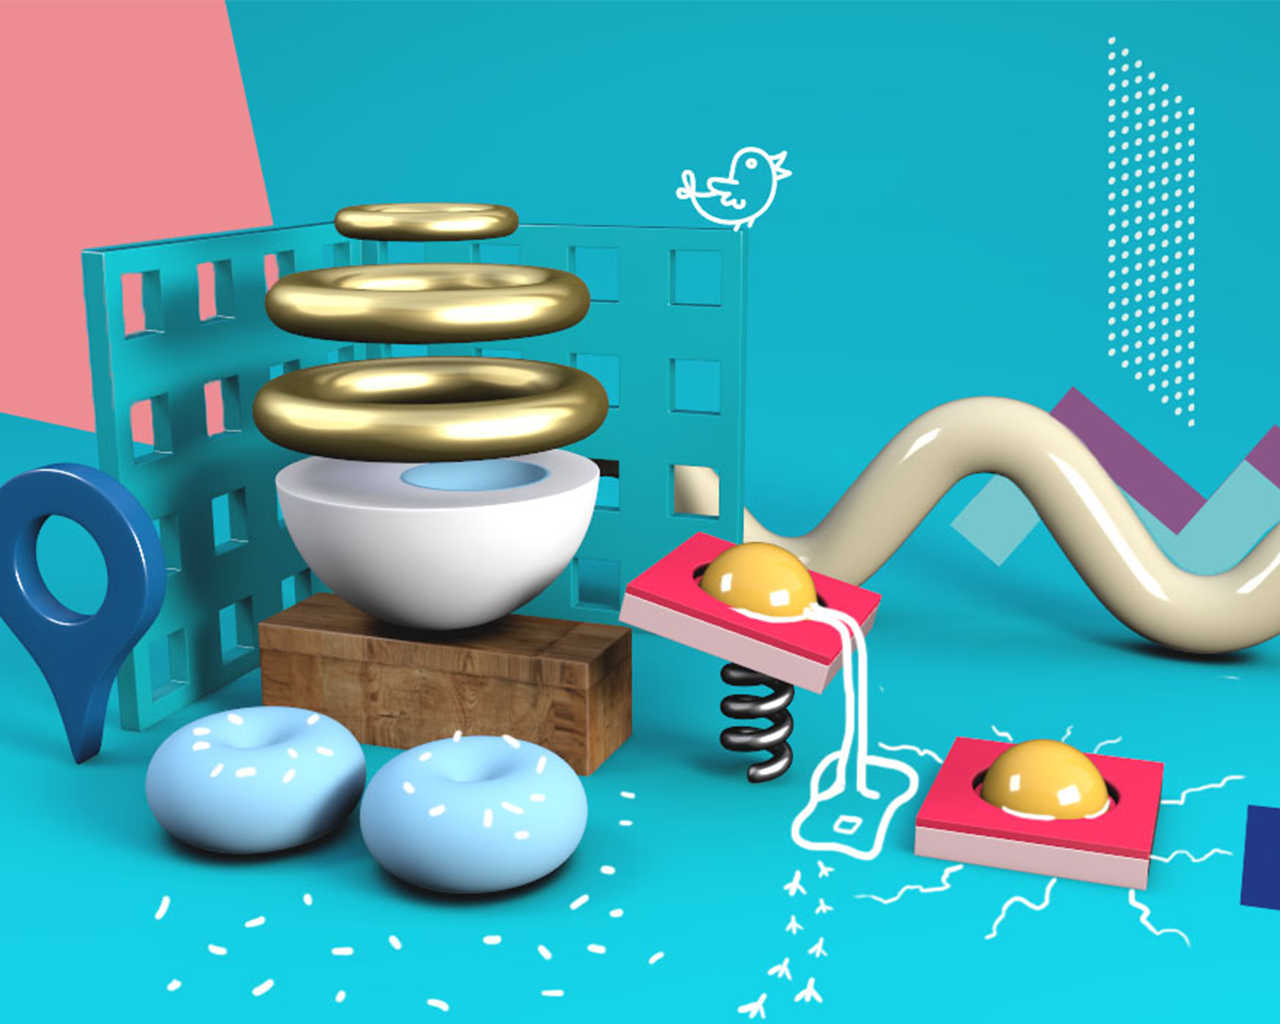 Scene of various colorful 3d shapes interacting